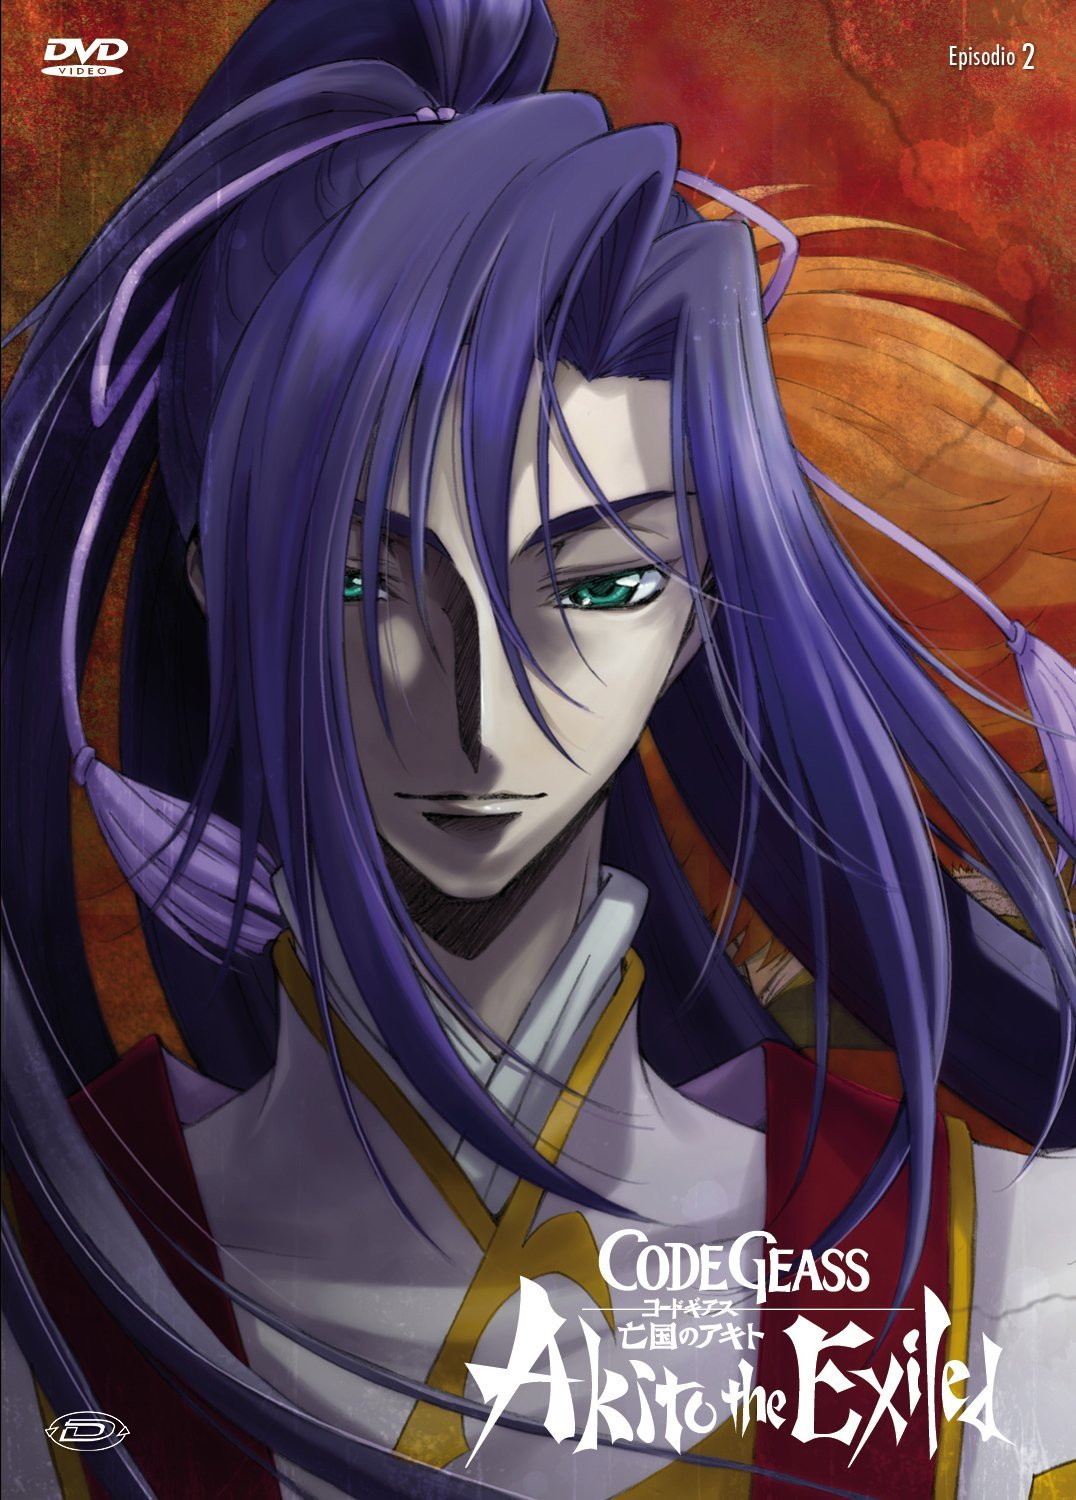 code geass akito the exhiled 2 dvd